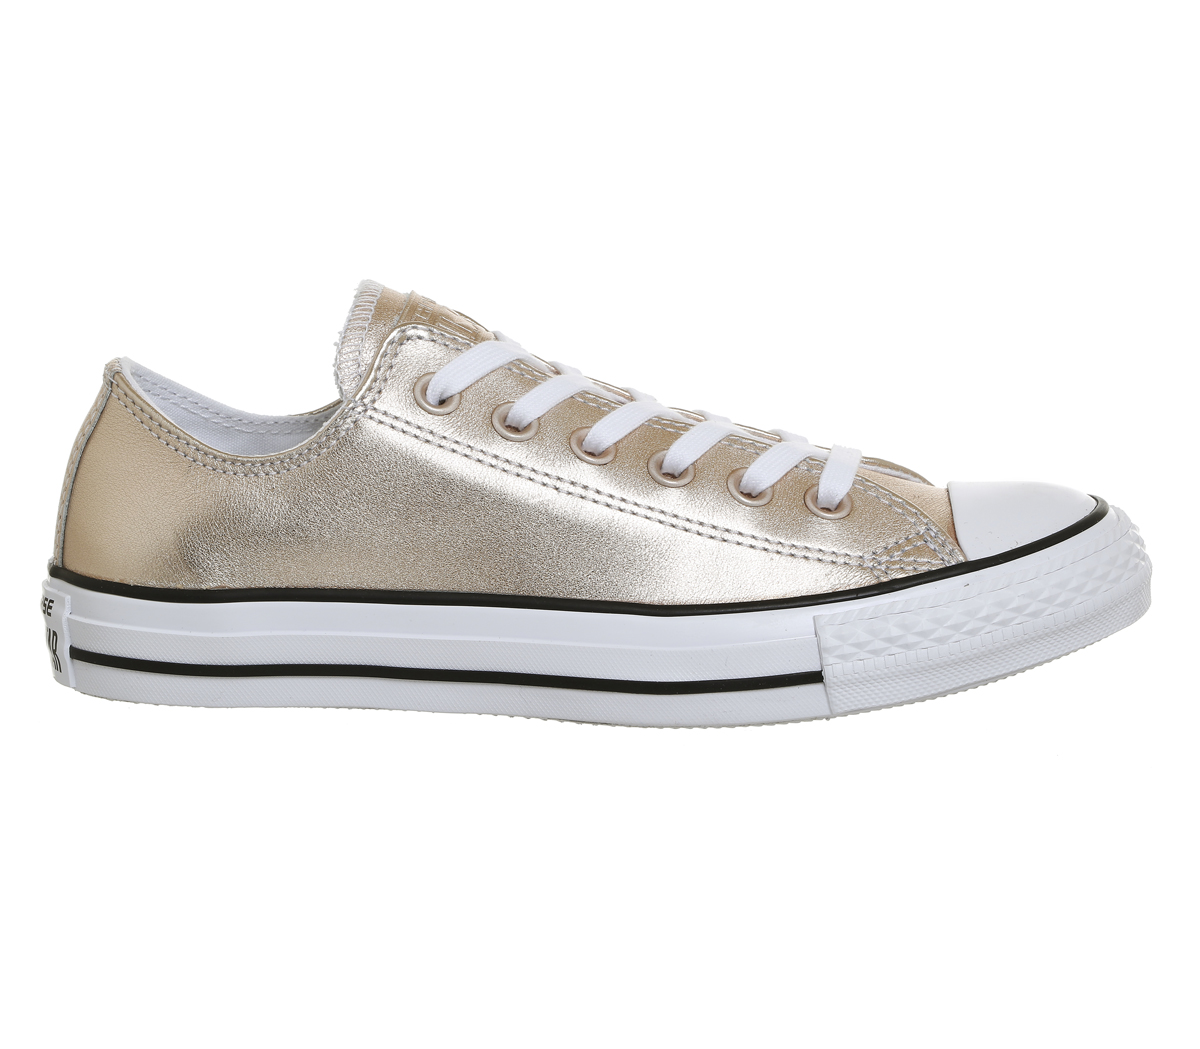 30fbc35a69f9 Sentinel Womens Converse All Star Low Leather Trainers Blush Gold Trainers  Shoes